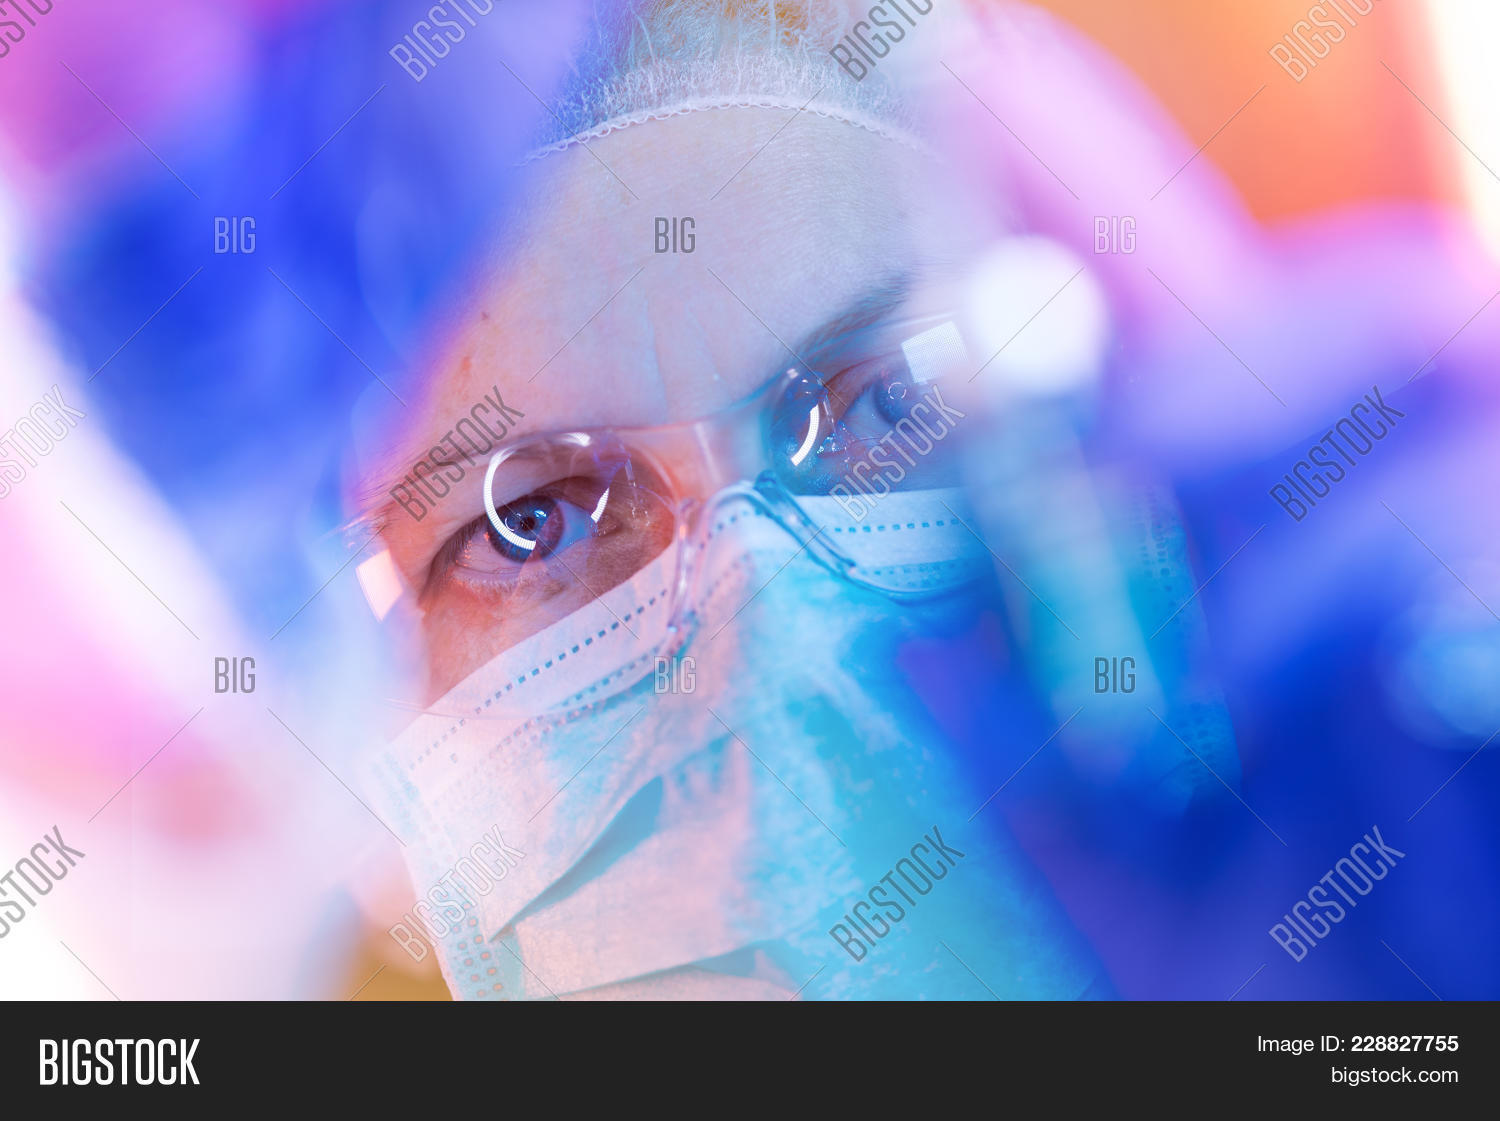 Medical science powerpoint background powerpoint template medical your text toneelgroepblik Image collections